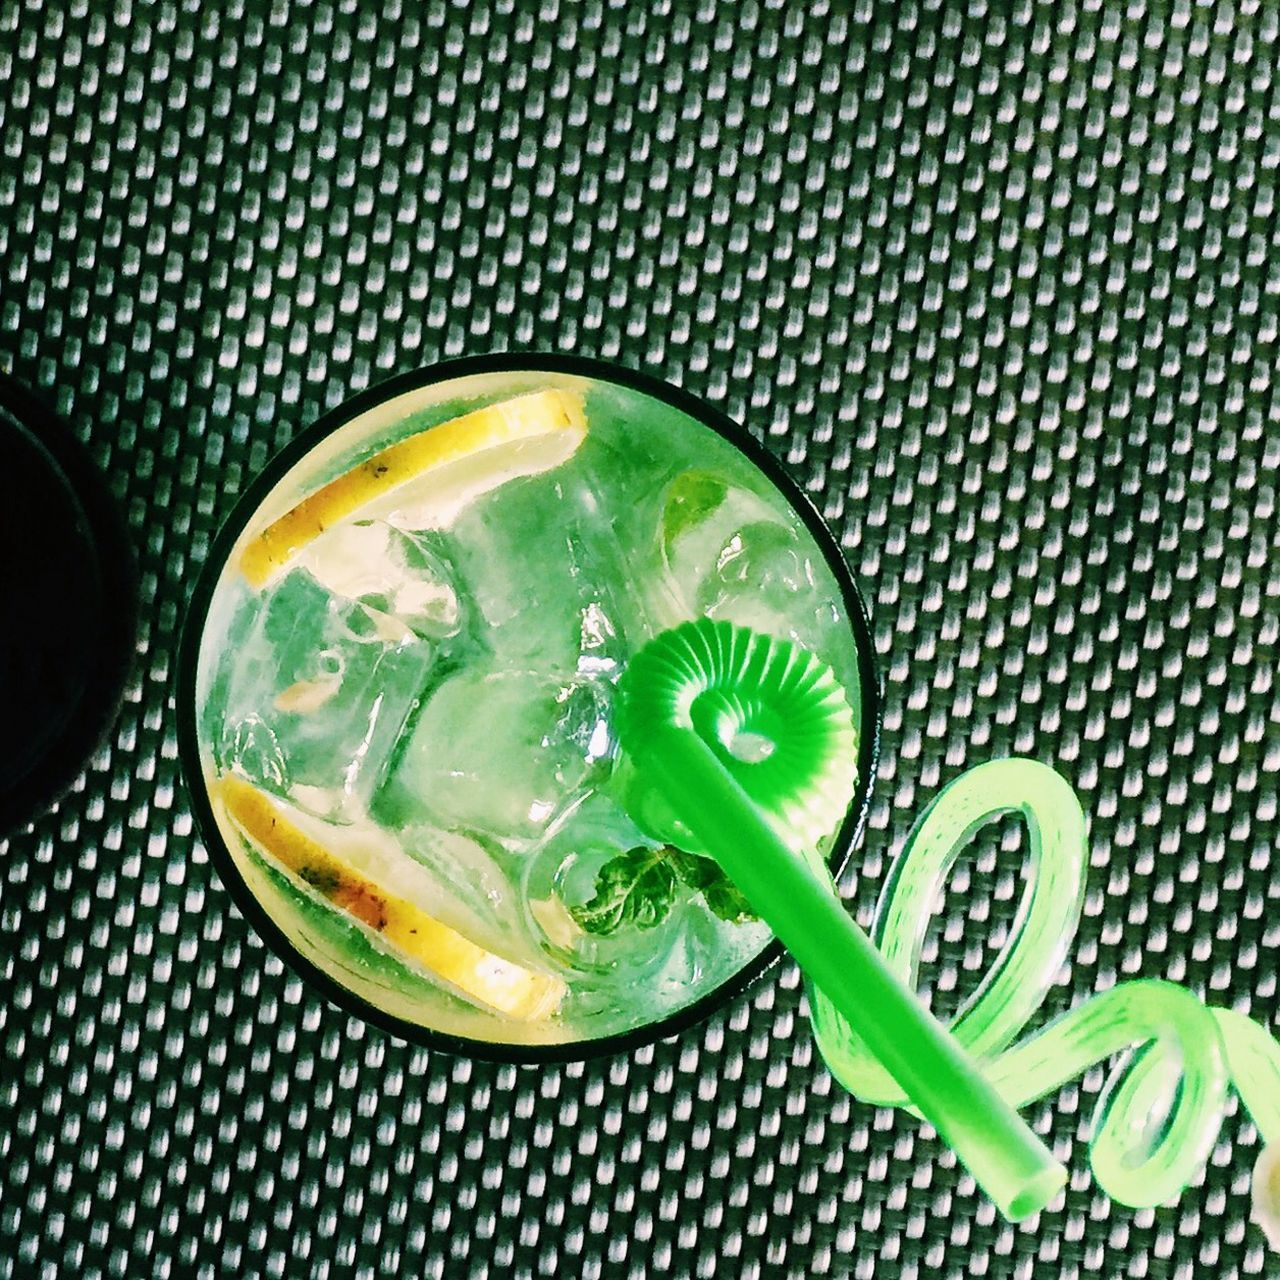 Directly Above View Of Juice With Green Spiral Straw On Table